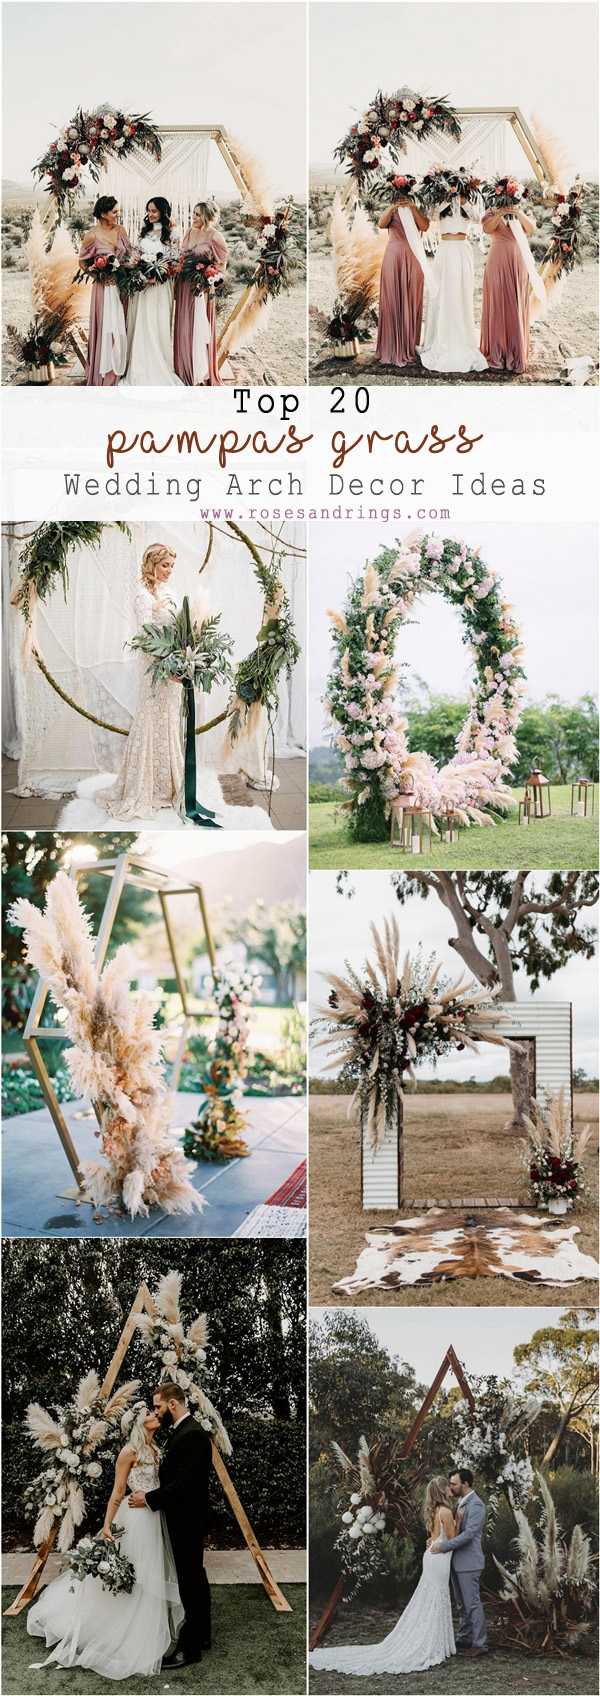 Top 20 Bohemian Pampas Grass Wedding Arches  Roses  Rings